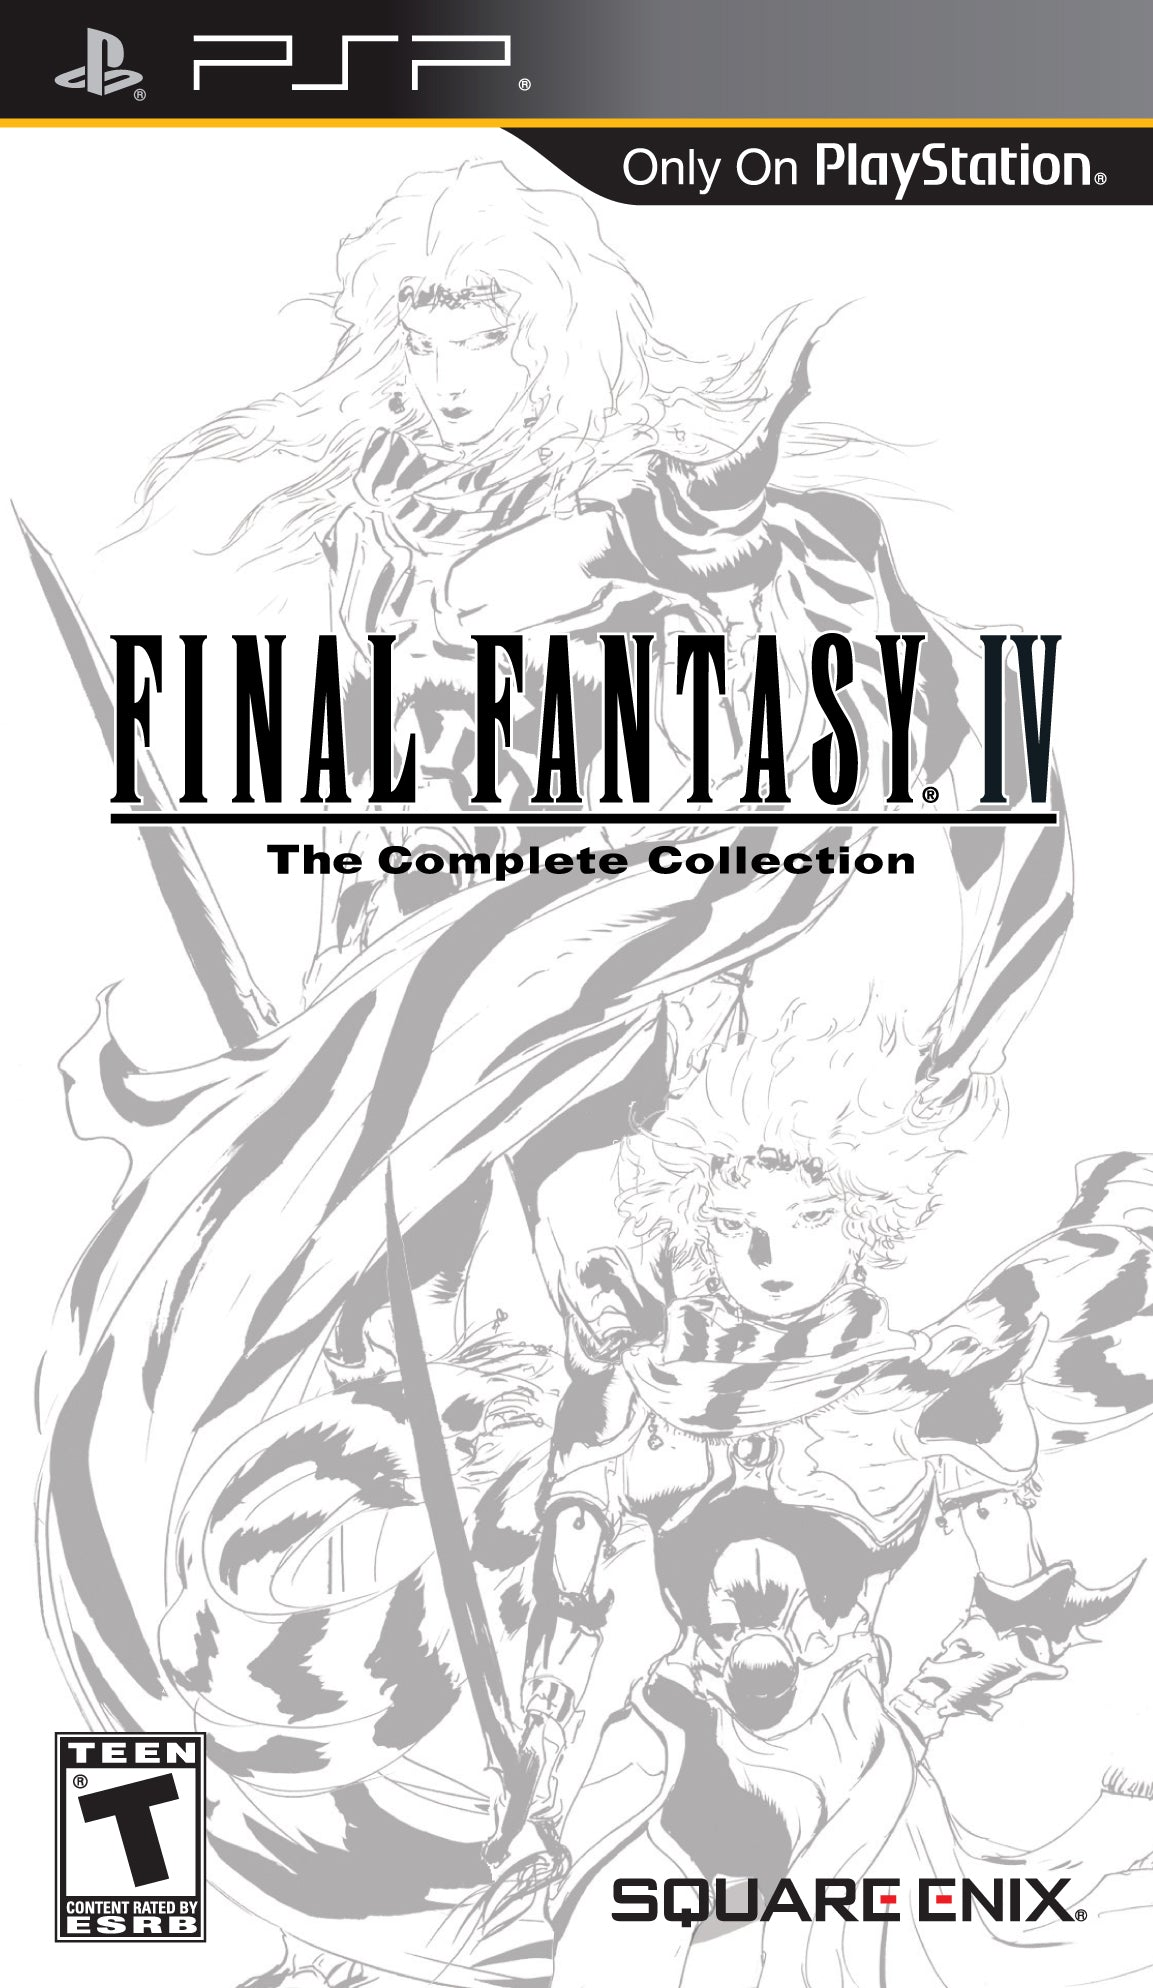 Final Fantasy IV: The Complete Collection - PSP